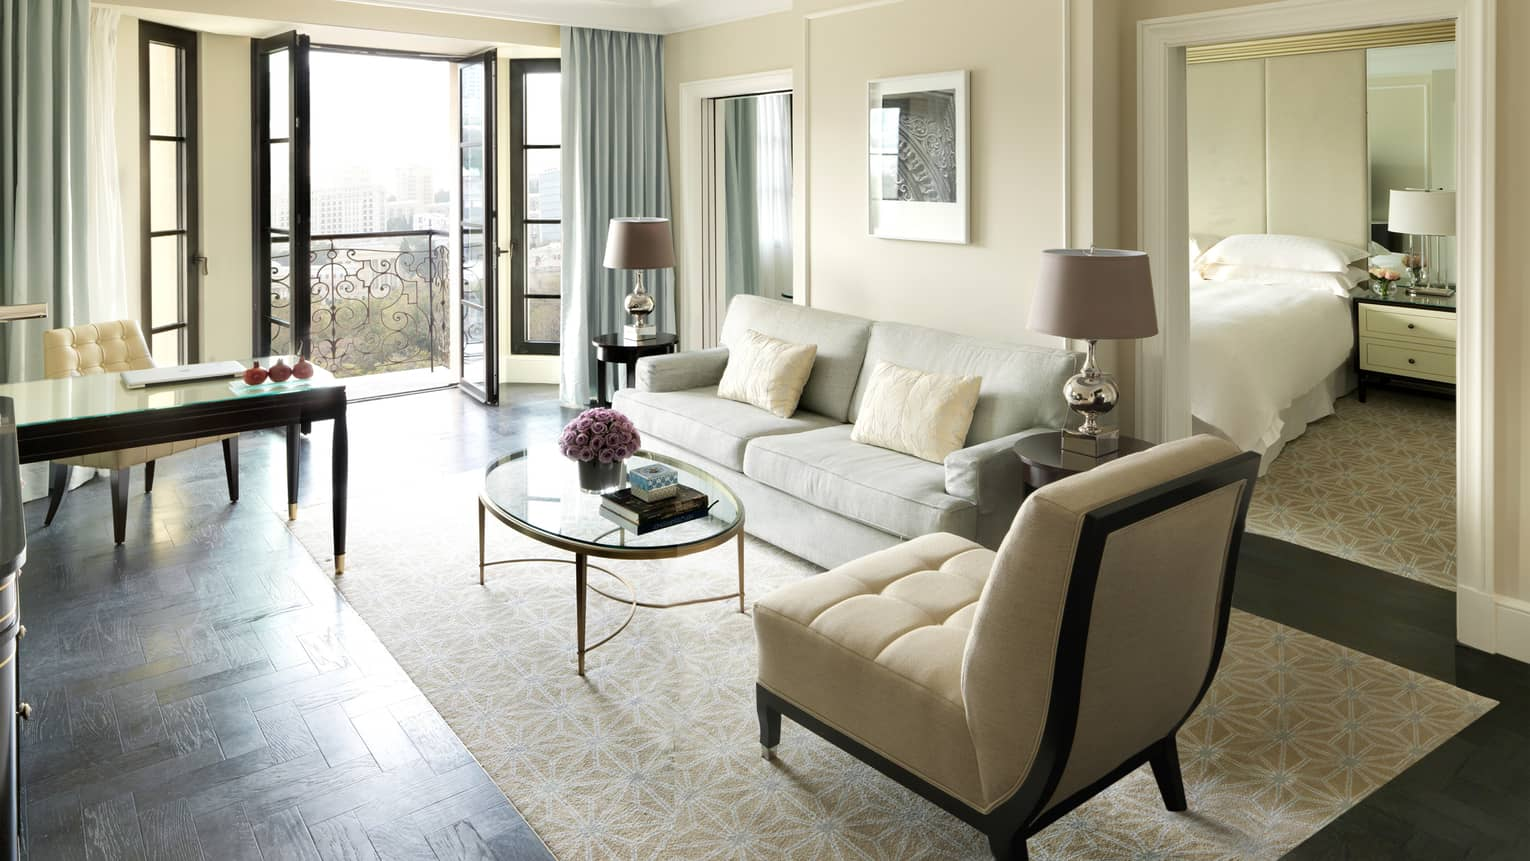 Executive Suite living room with open French doors, white sofa and plush chair, writing desk, door to bedroom